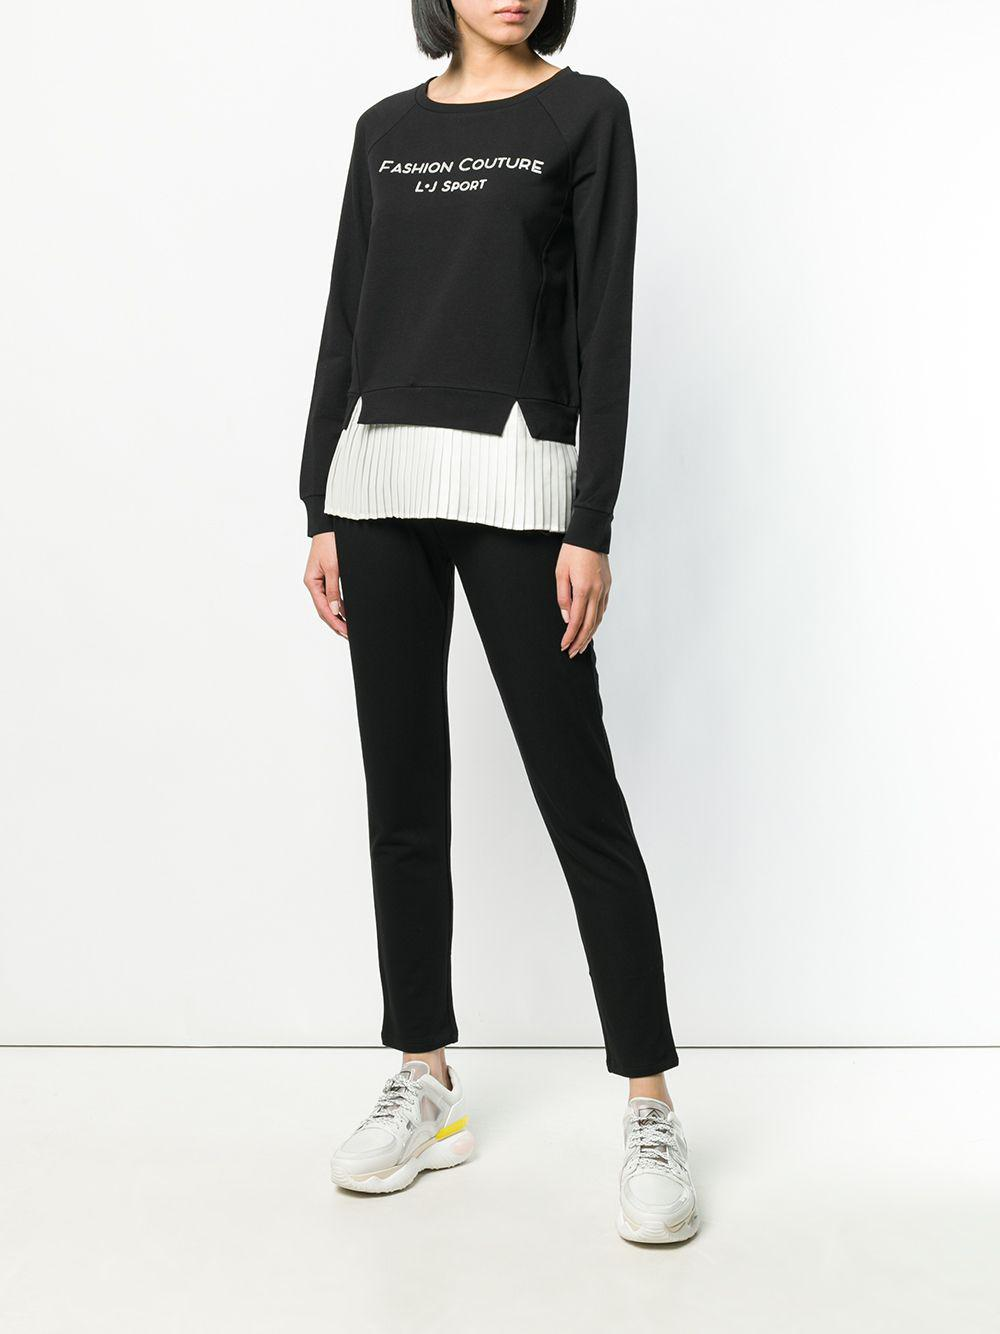 Lyst Liu Trim Jo Fullscreen Sweatshirt View Pleated Black rwrqxf